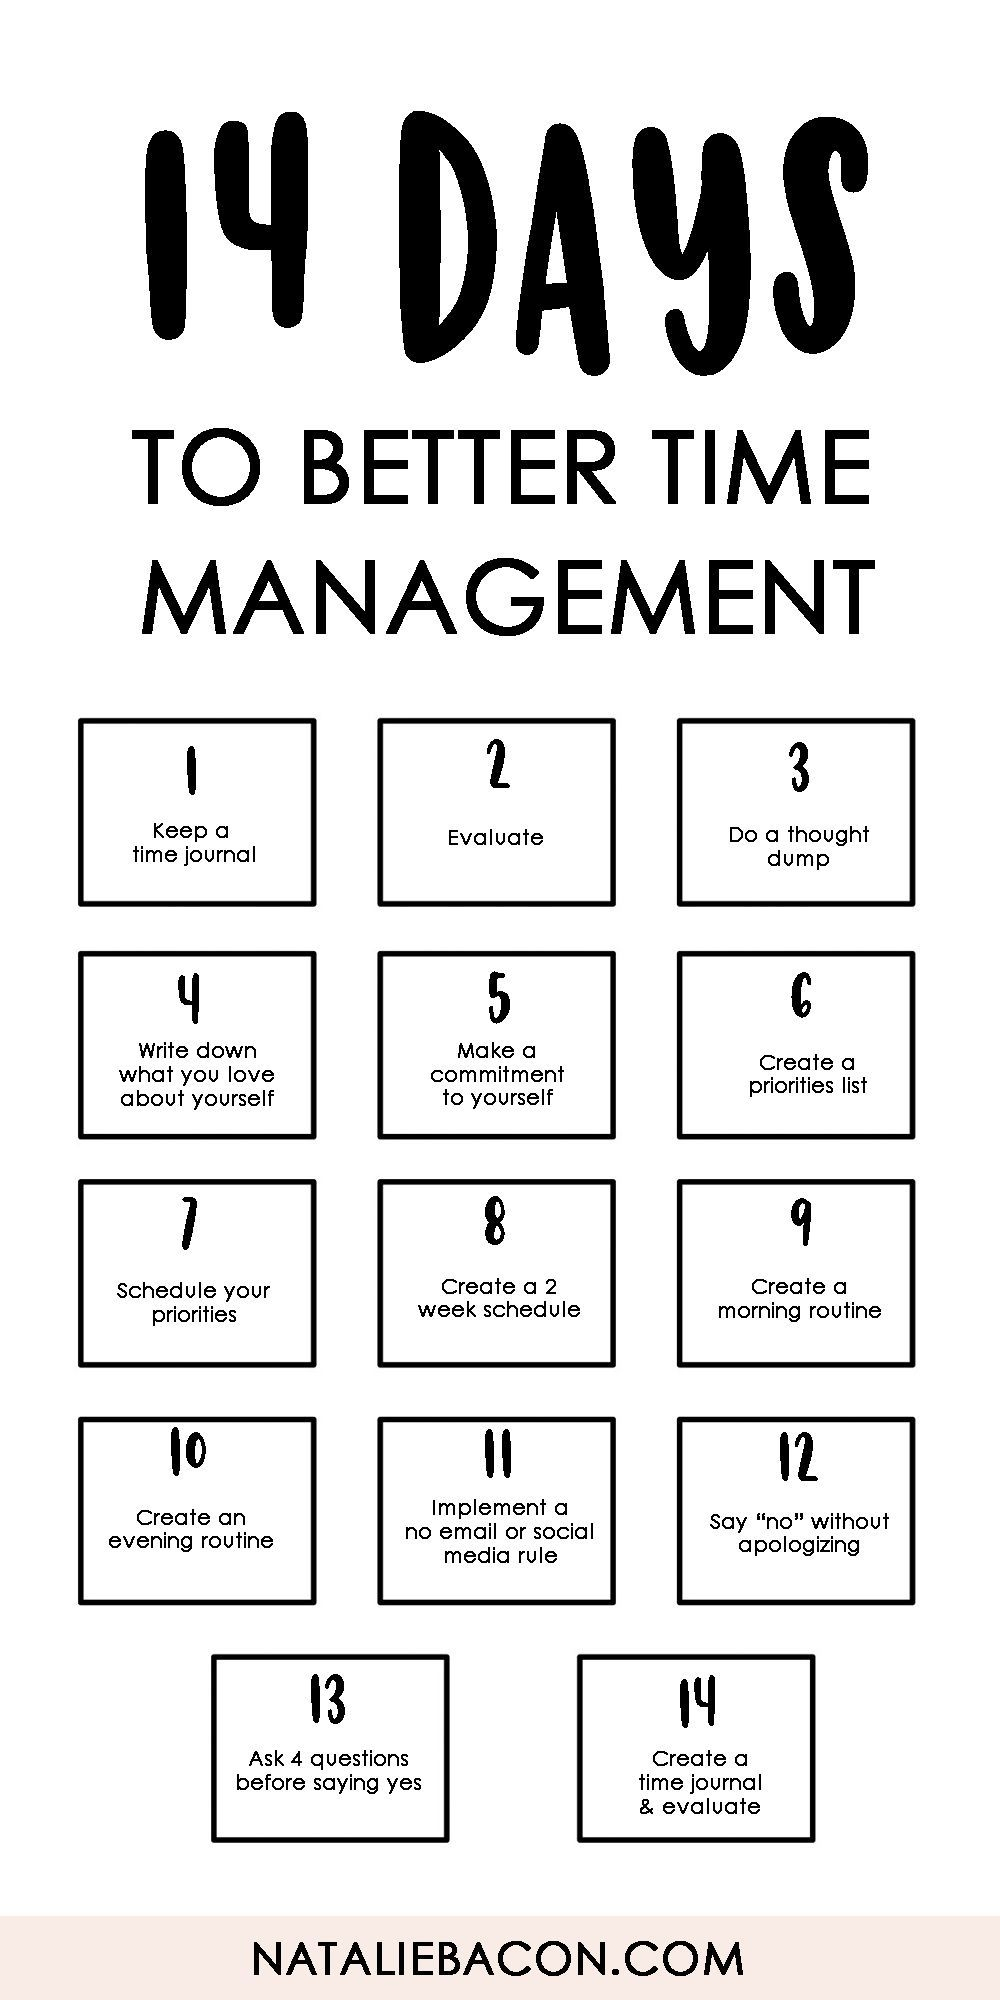 14 Days To Better Time Management - Free Download Template